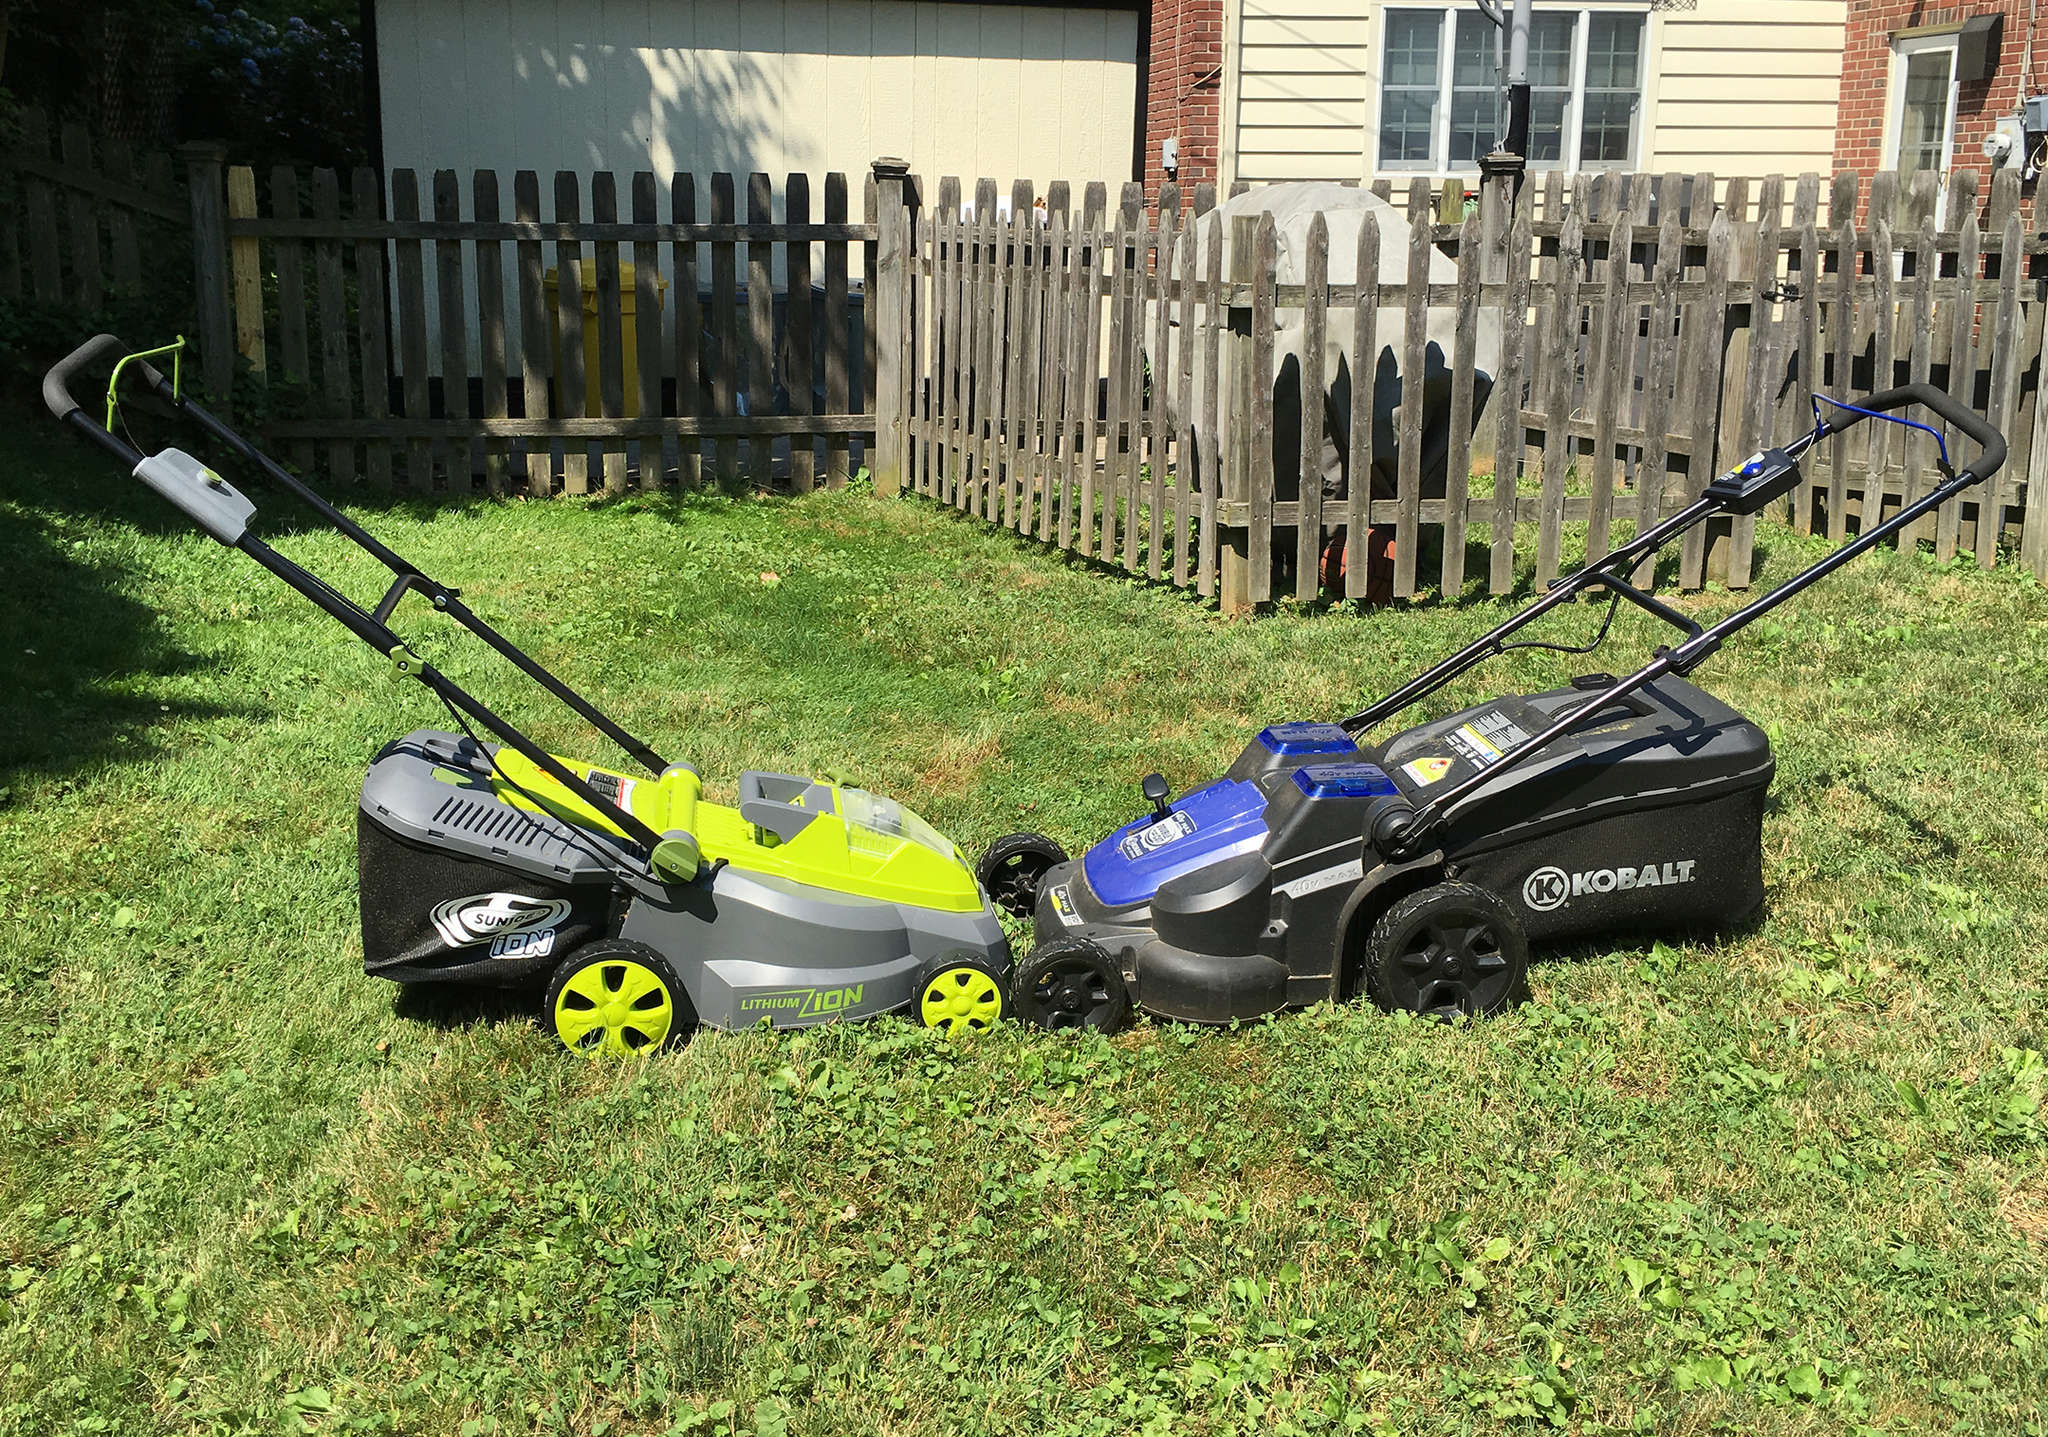 Battery-powered lawn mowers from SunJoe (left) and Kobalt run on rechargeable batteries, and are so quiet that you can hear yourself think.